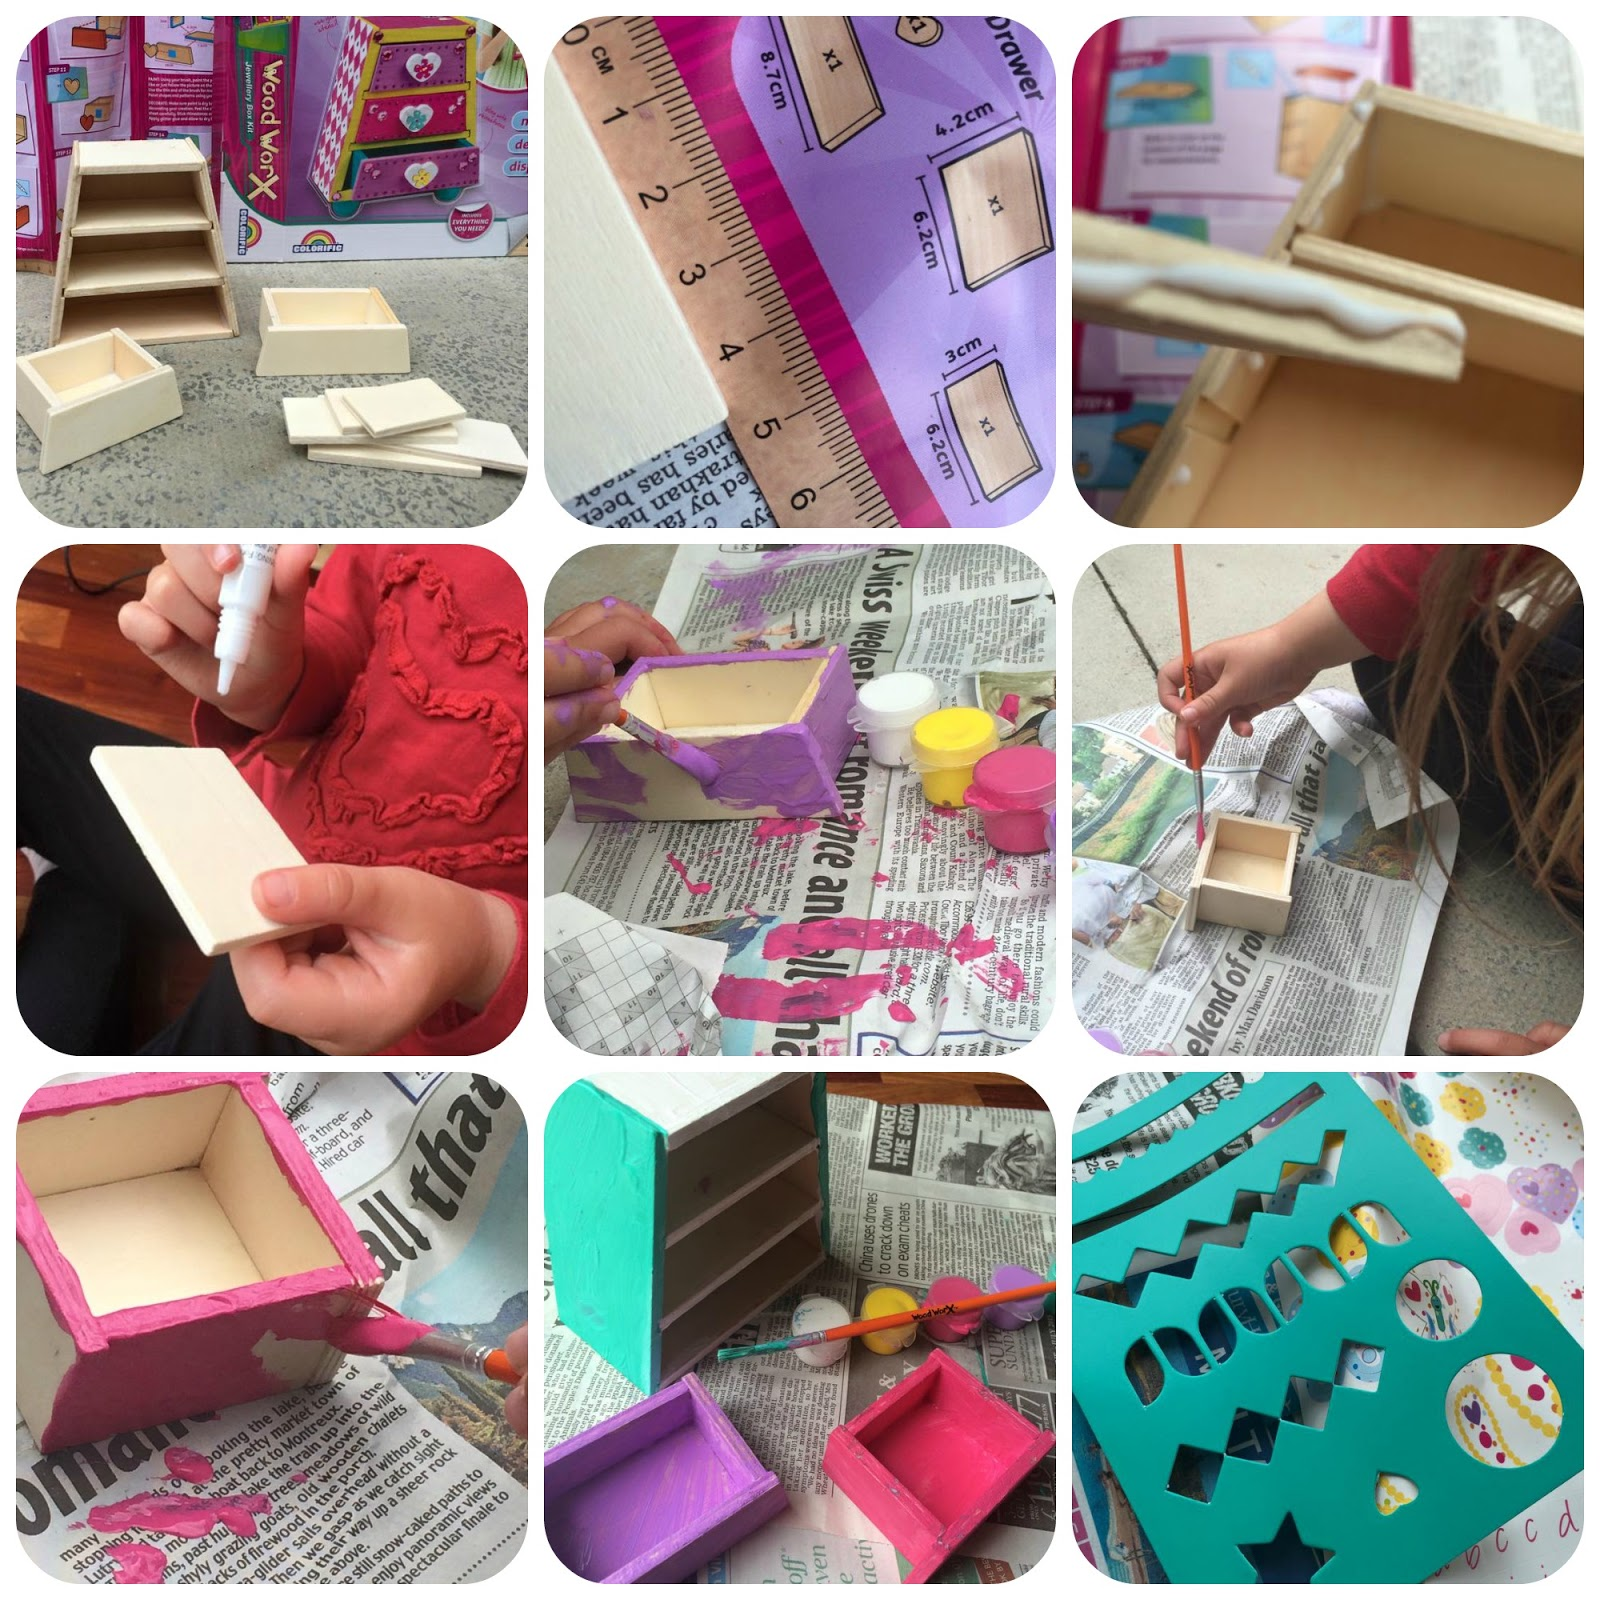 My Mummys Pennies Wood Worx Jewellery Box Kit Review and Giveaway